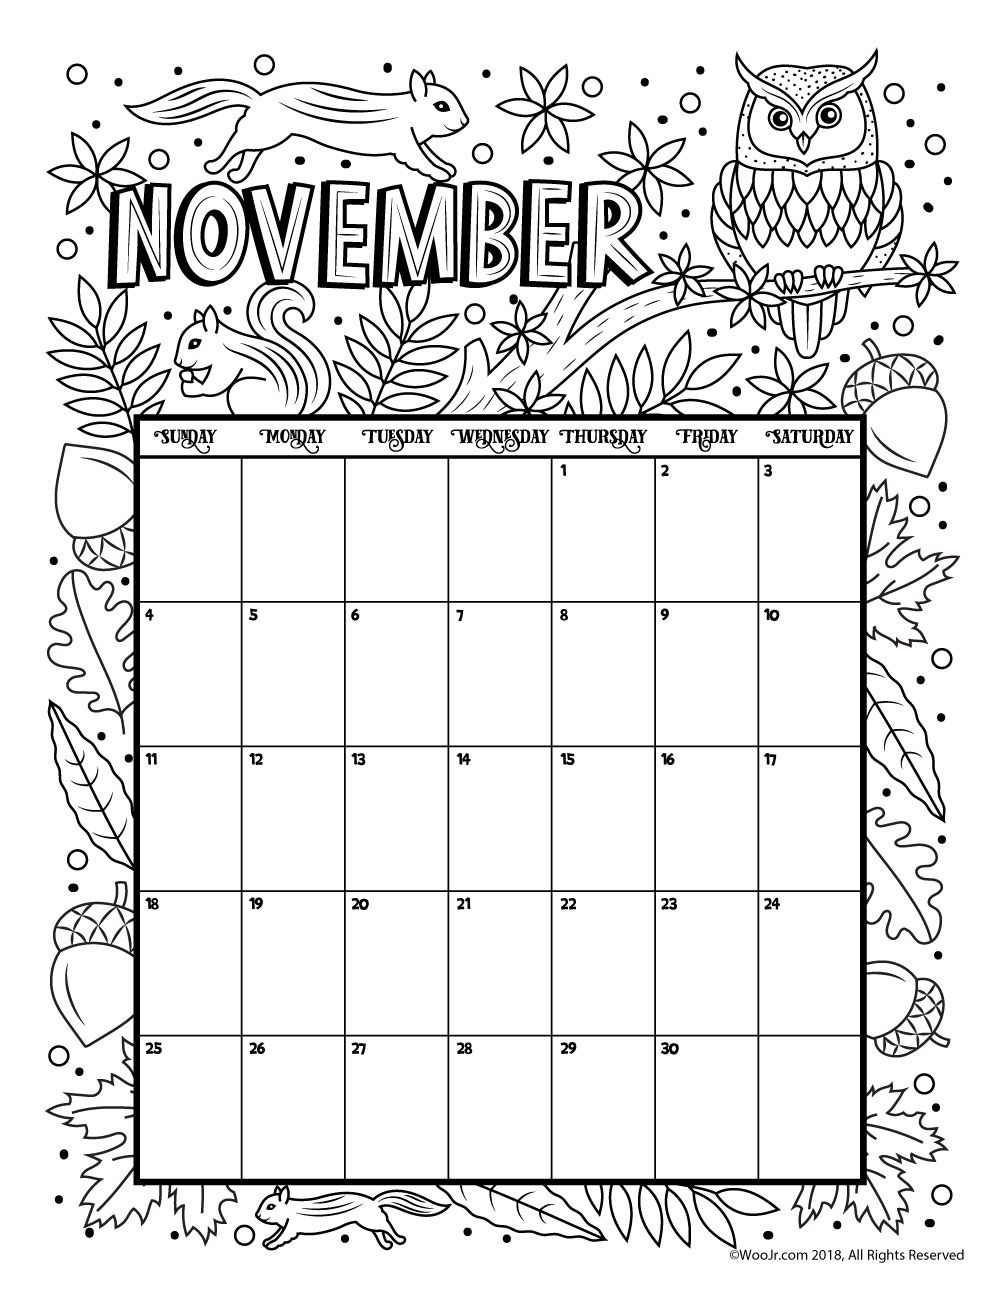 november 2018 calendar page word excel template november 2018 November 2018 Excel Calendar erdferdf